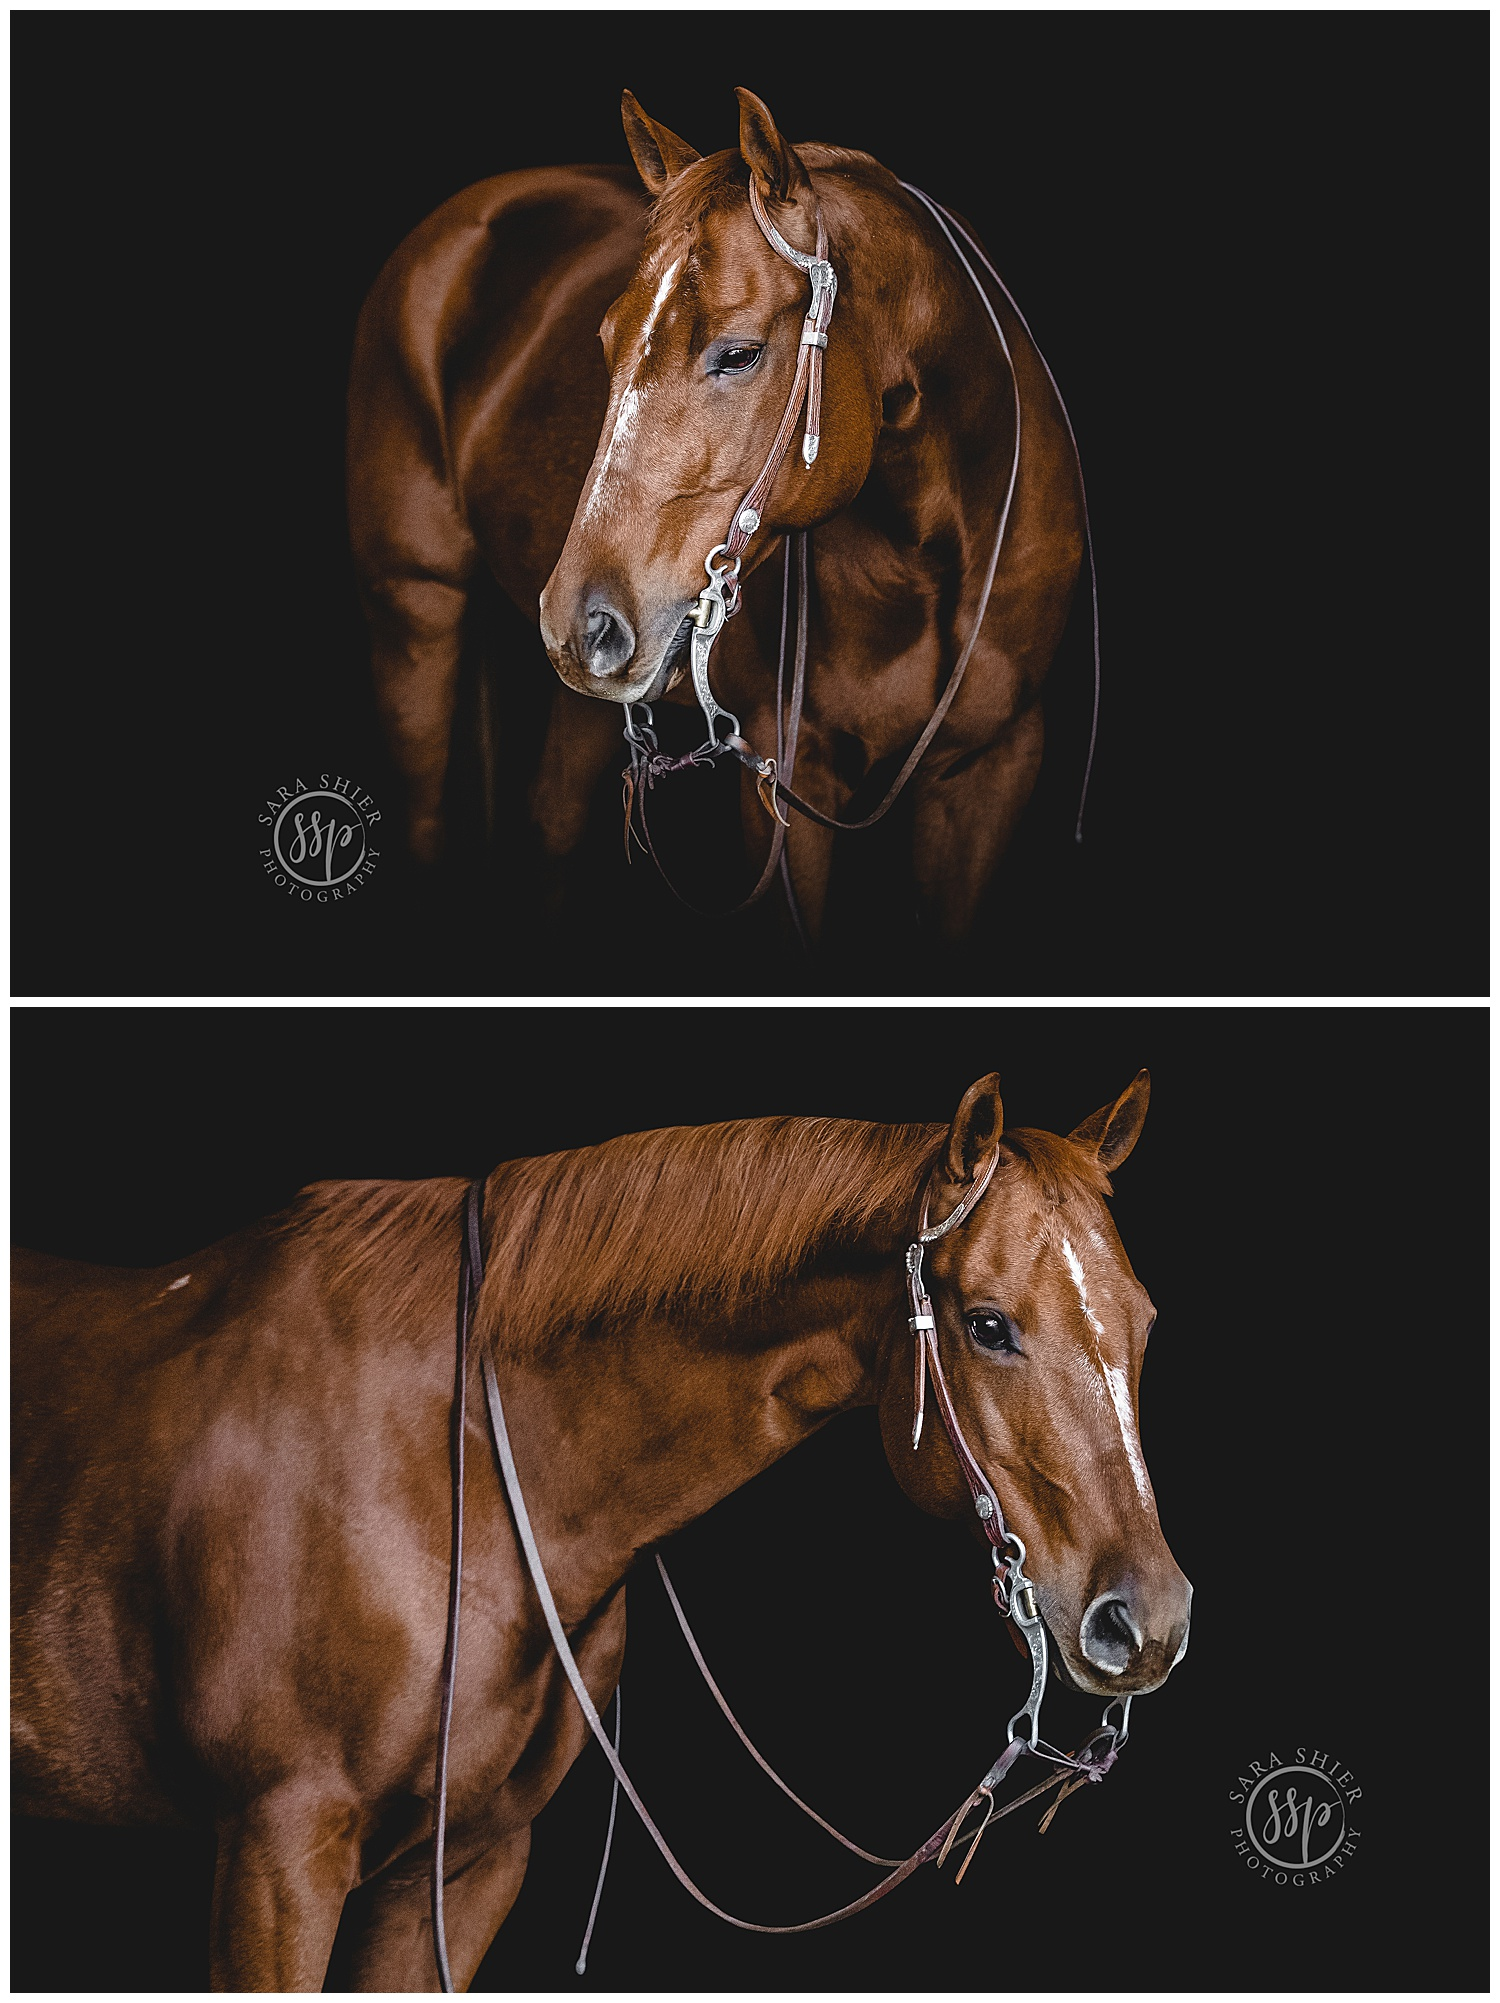 Black Background Horse Rider Equine Photographer Southern California Sara Shier Photography SoCal Equestrian Cowgirl_0336.jpg